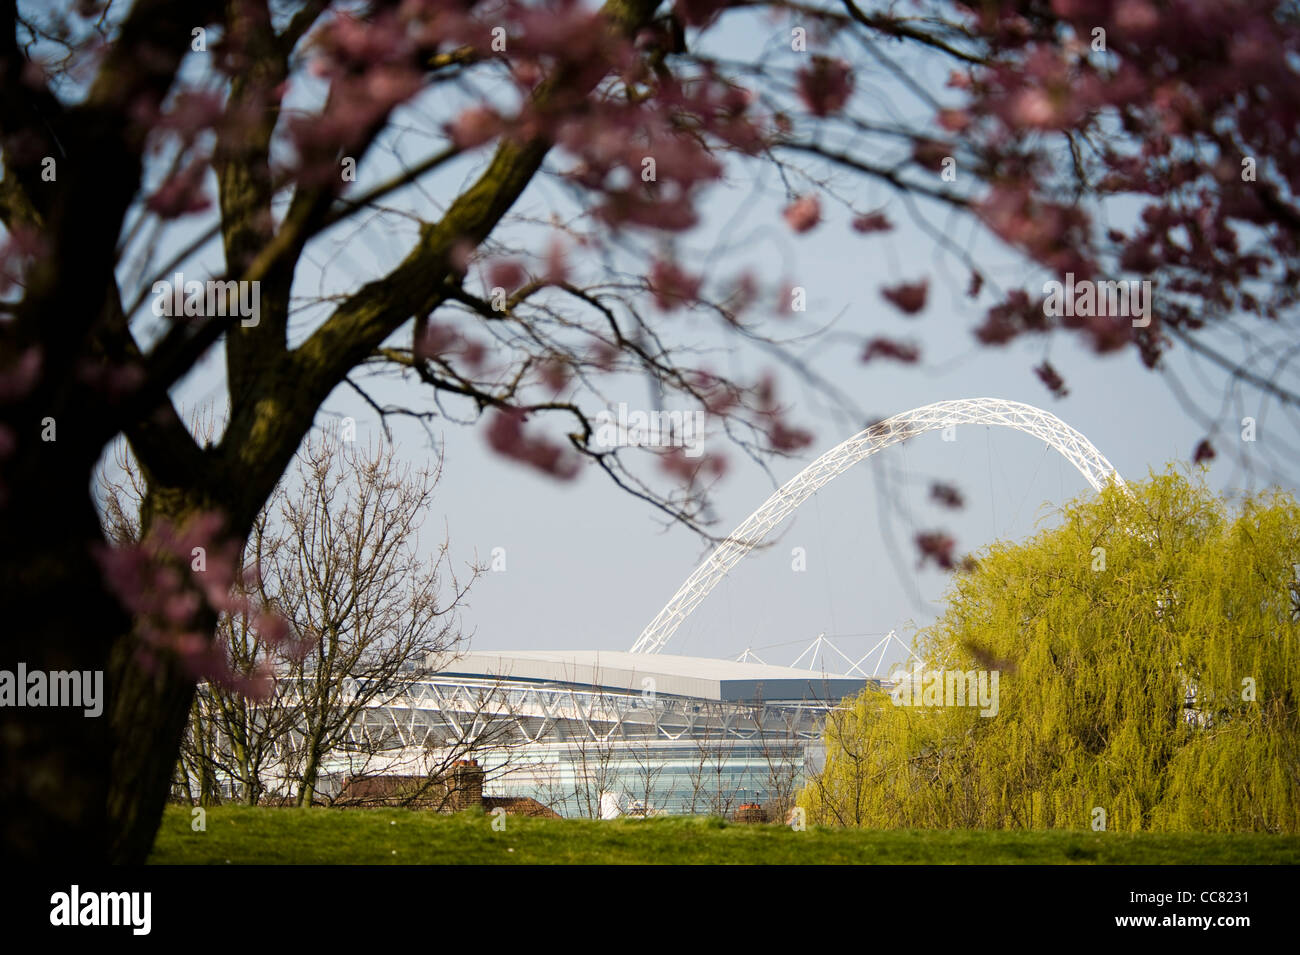 Wembley stadium seen in spring through the trees of Brent River Park in Brent a London borough - Stock Image